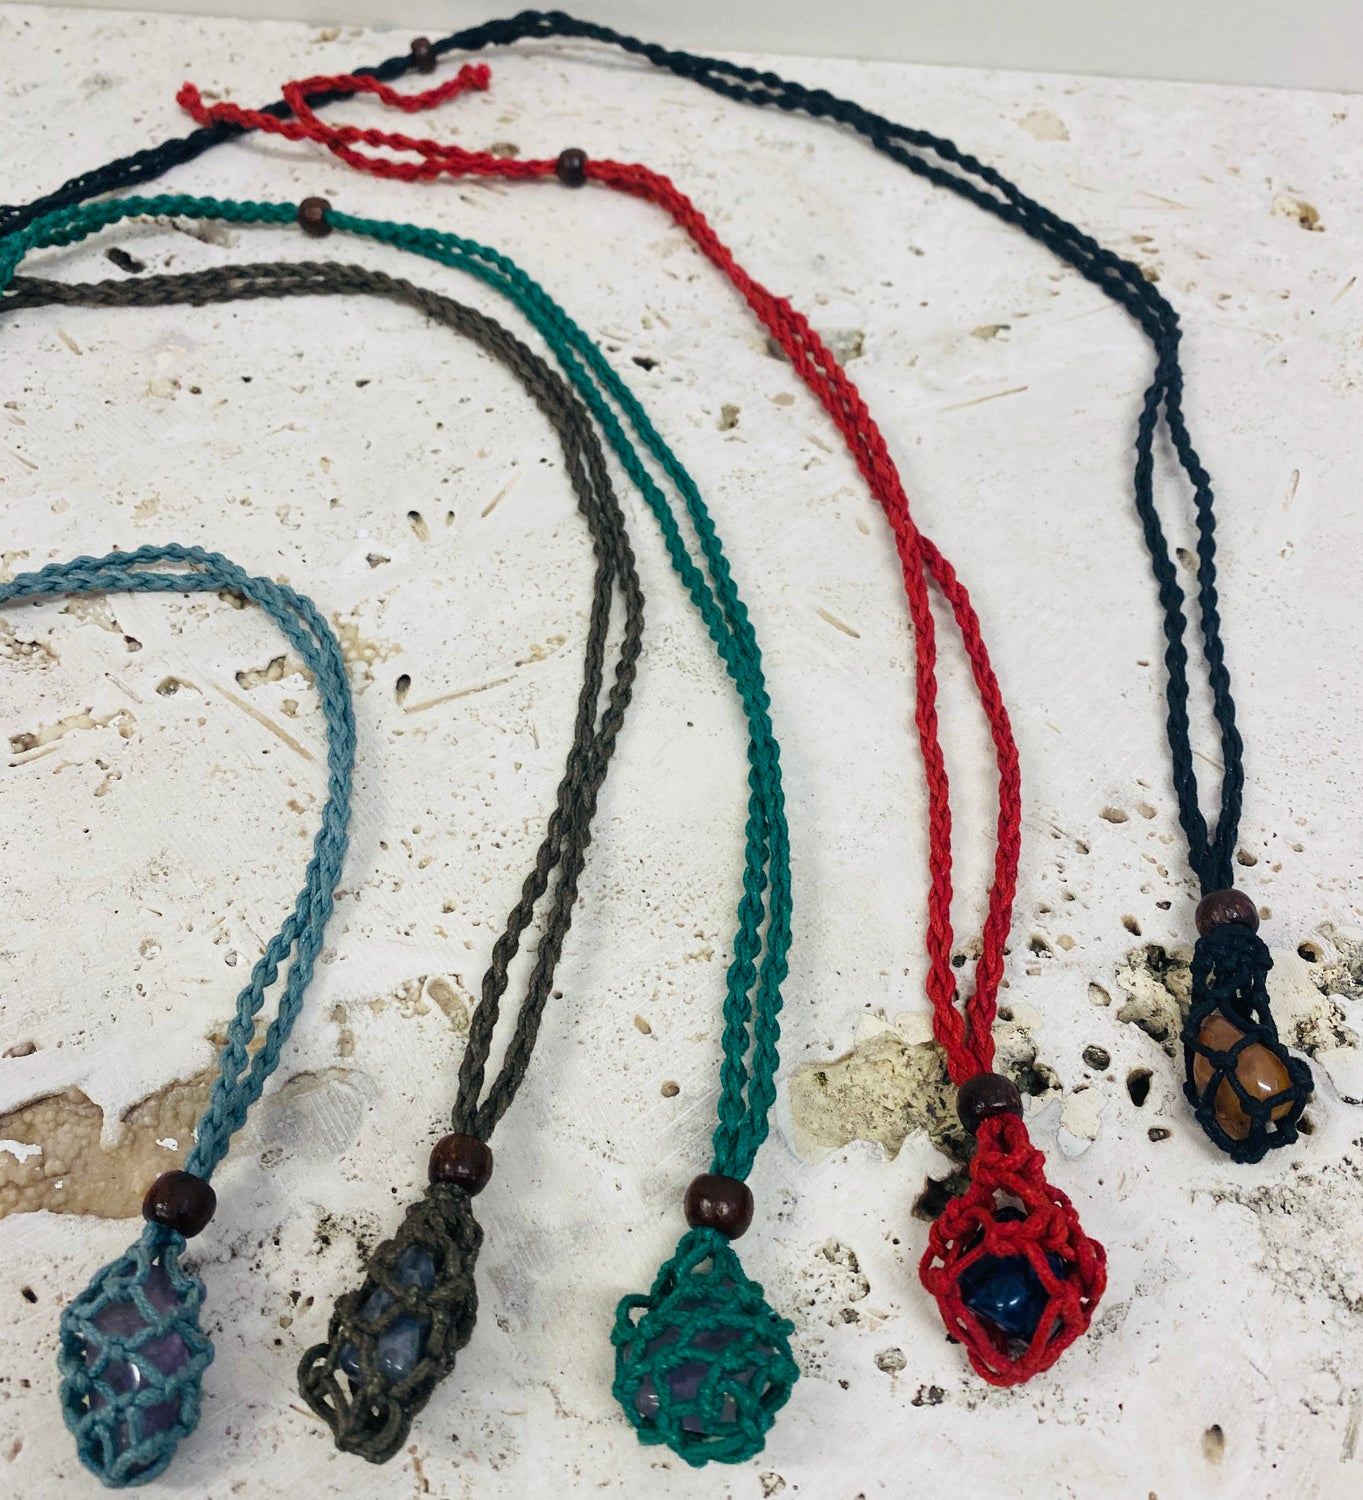 Crochet Crystal Bags Necklaces for tumbled stones and crystals!